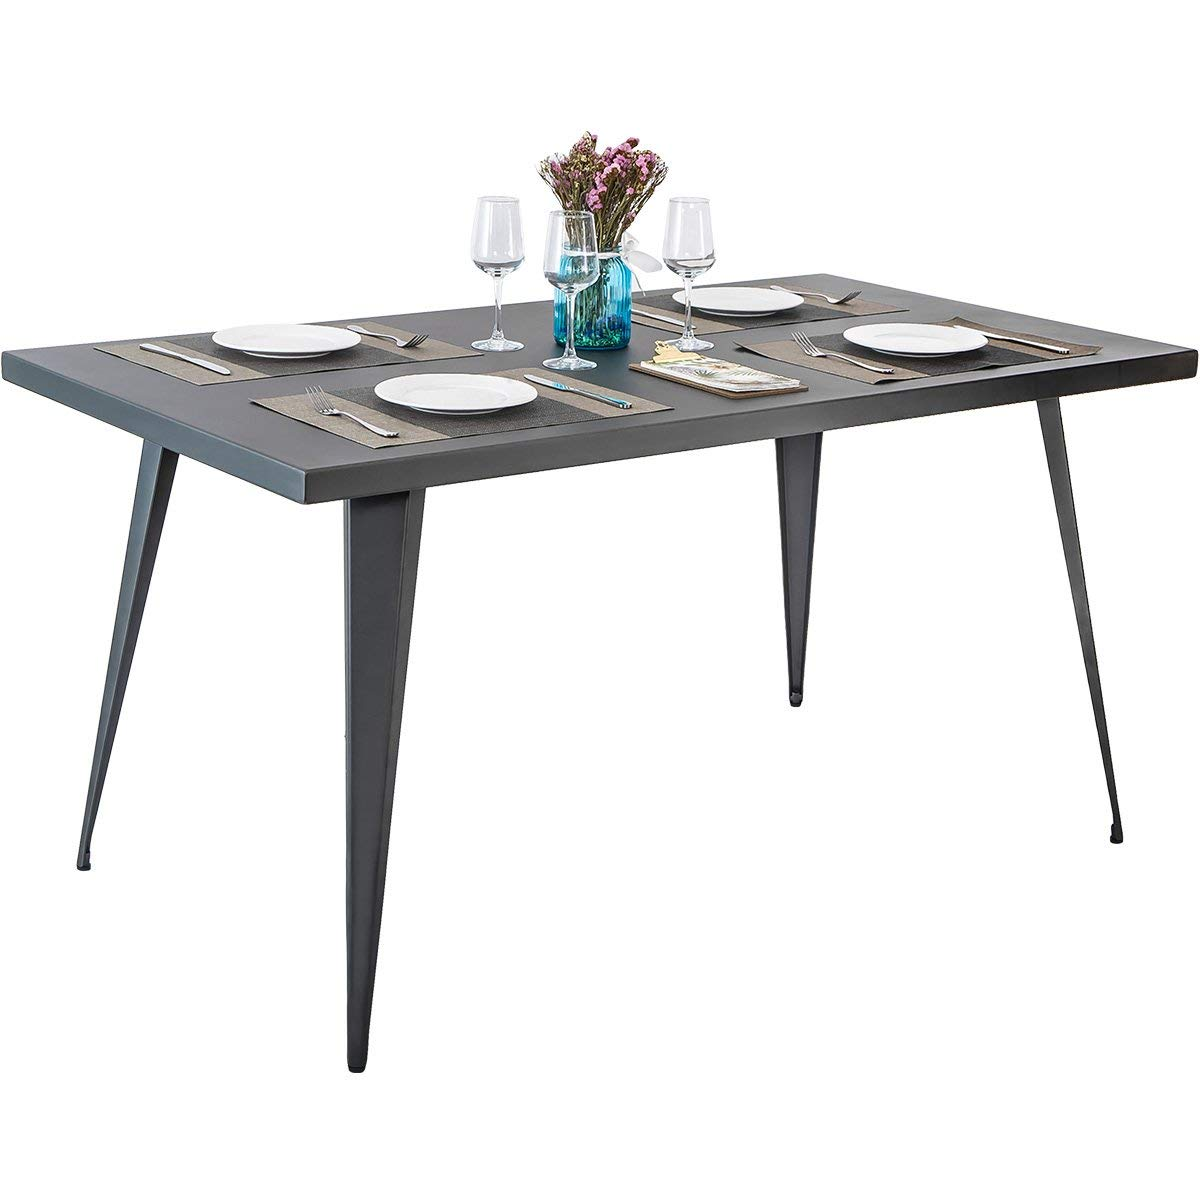 Harper&Bright Designs Rectangular Metal Dining Table (Gun Metal)